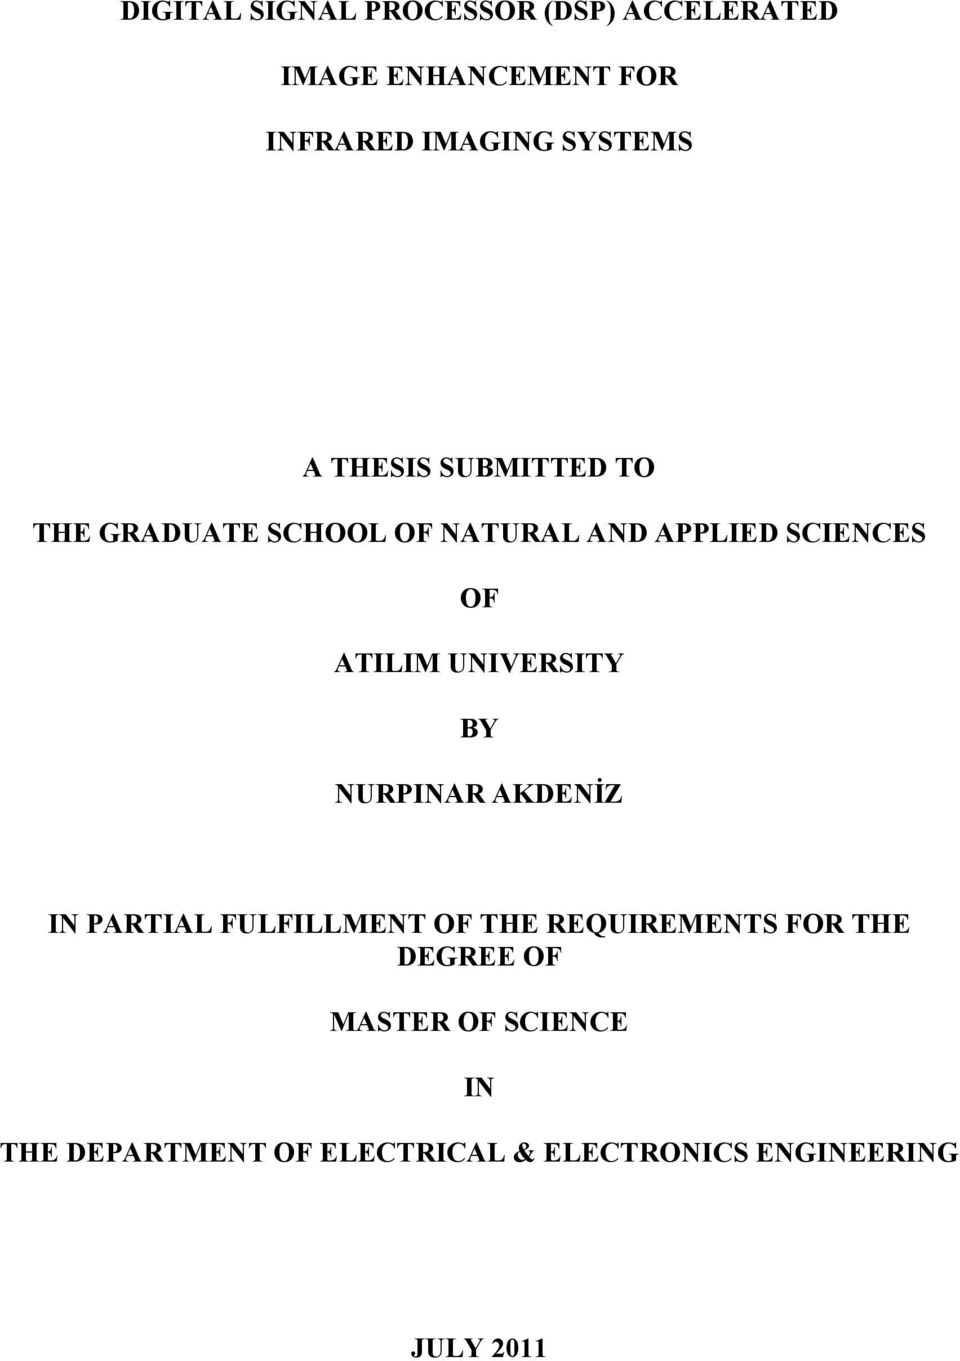 ATILIM UNIVERSITY BY NURPINAR AKDENİZ IN PARTIAL FULFILLMENT OF THE REQUIREMENTS FOR